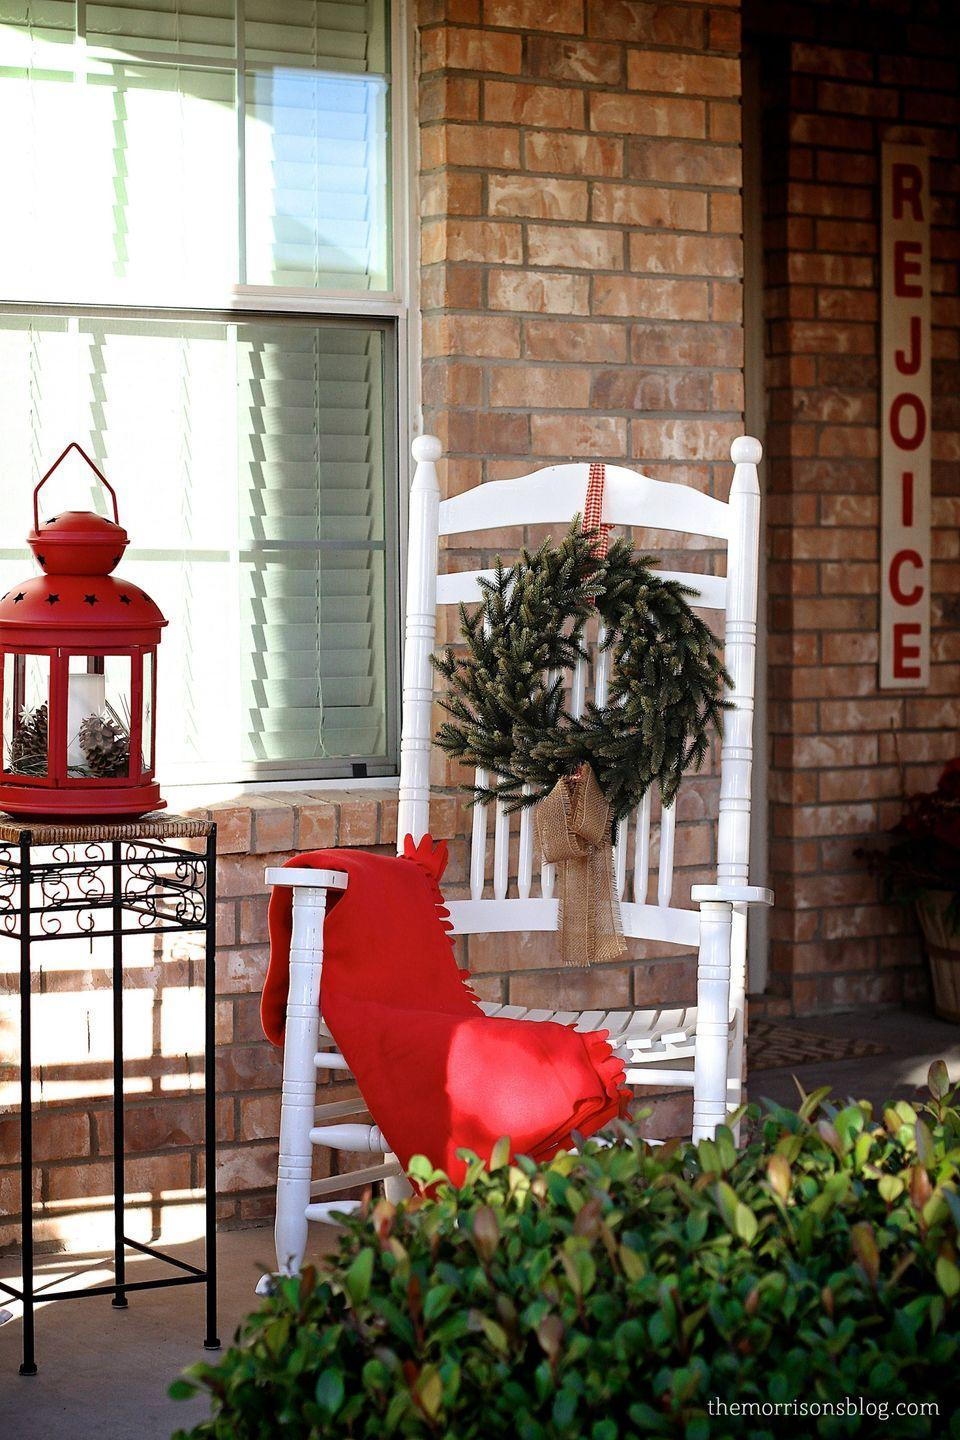 """<p>The weather outside may be frightful. But there's nothing cozier than rocking away on a magically decorated porch during the holiday season. Hang woolen blankets over your rocking chairs to get the full effect and keep your guests warm. Or try giving each rocker its own wreath.<br></p><p><strong><em>Get the look at <a href=""""http://themorrisonsblog.com/christmas-home-tour-2013/"""" rel=""""nofollow noopener"""" target=""""_blank"""" data-ylk=""""slk:This Boy Mom"""" class=""""link rapid-noclick-resp"""">This Boy Mom</a>.</em></strong></p>"""